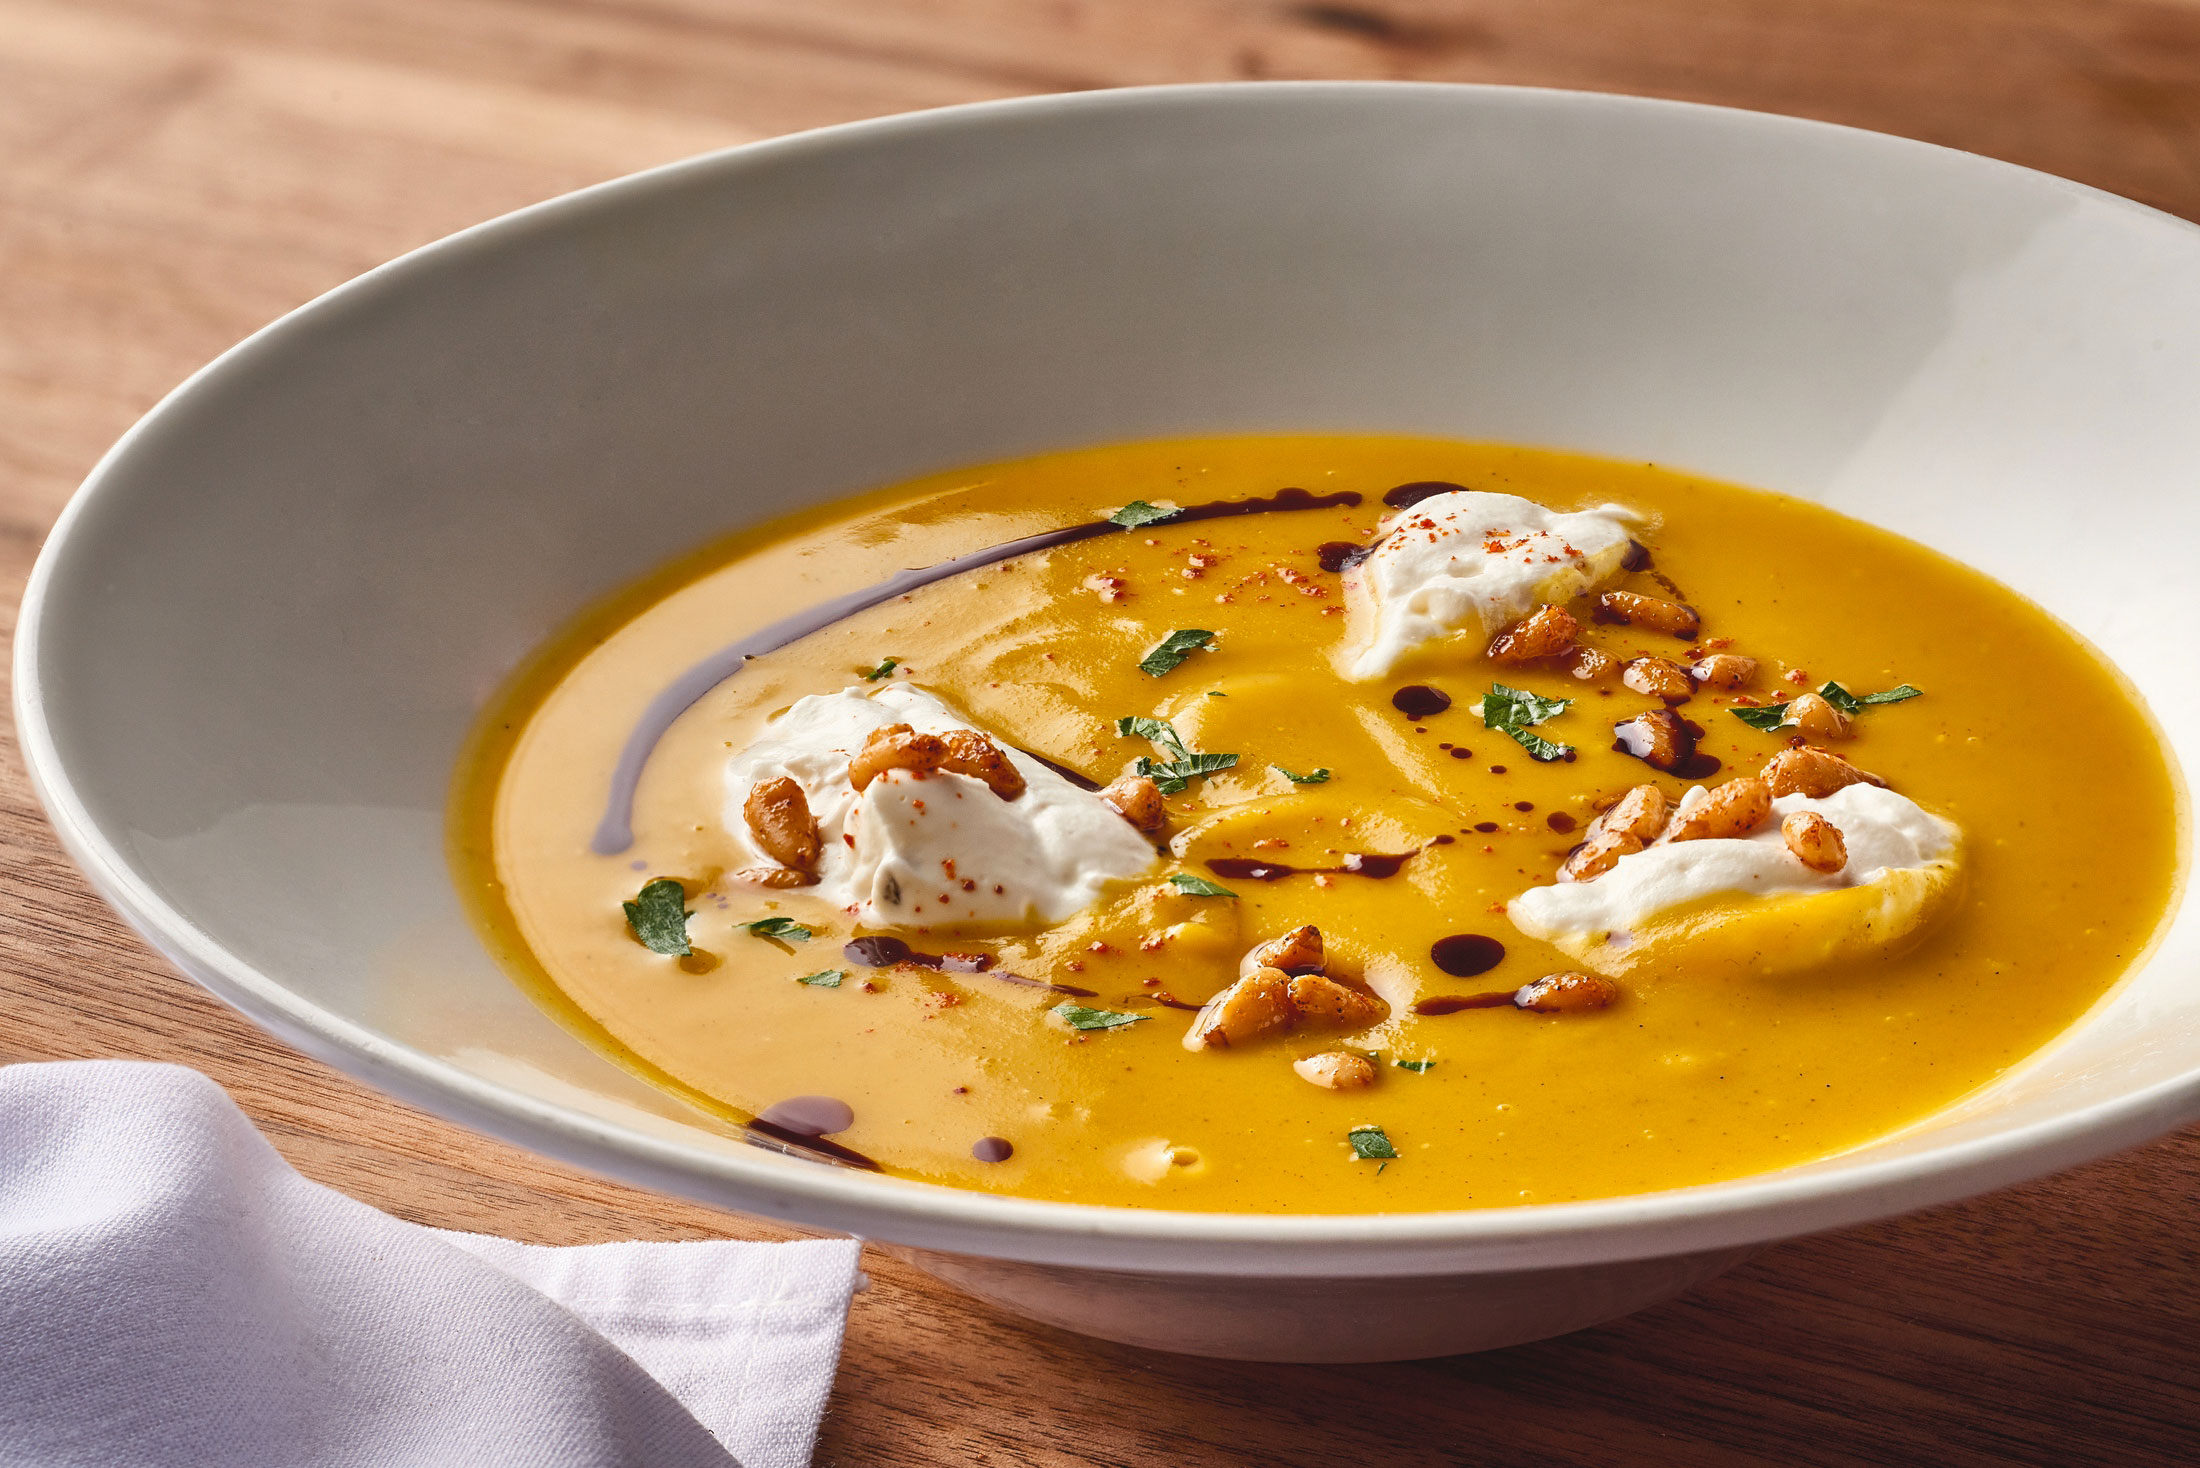 aaronvan_food_photography_enzos_hideaway_butternut_soup